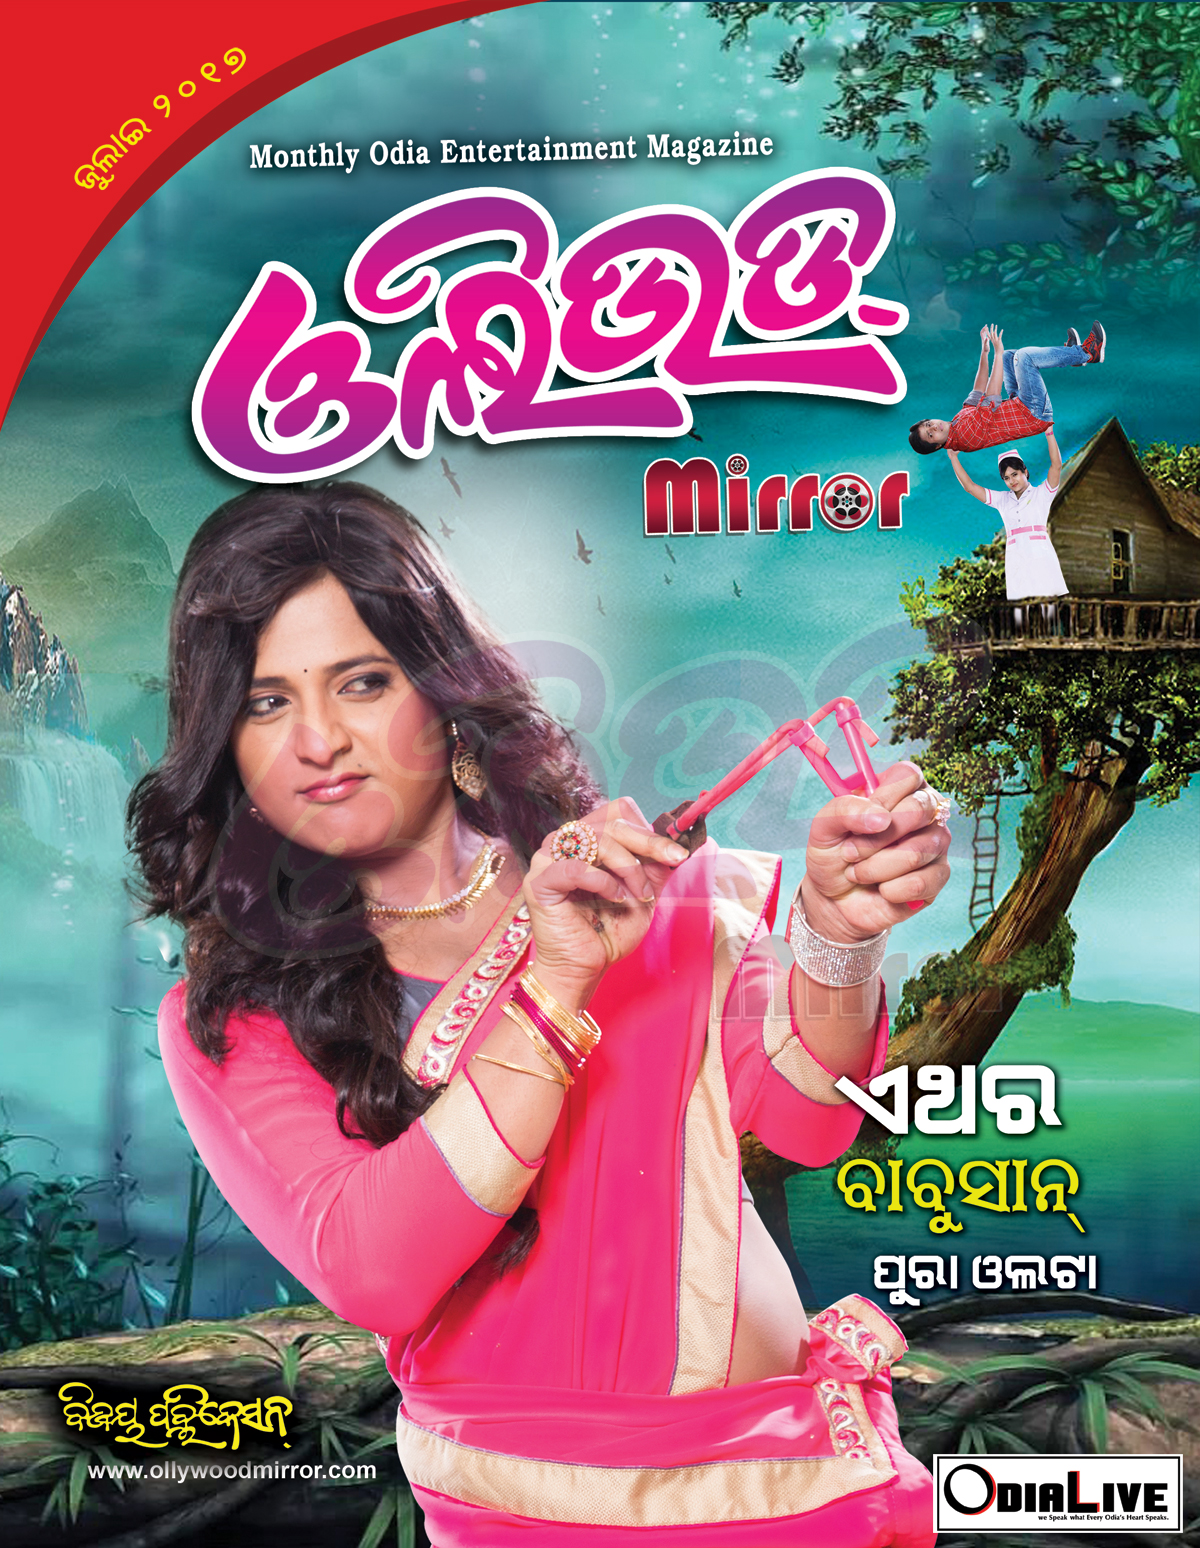 odia film magazine